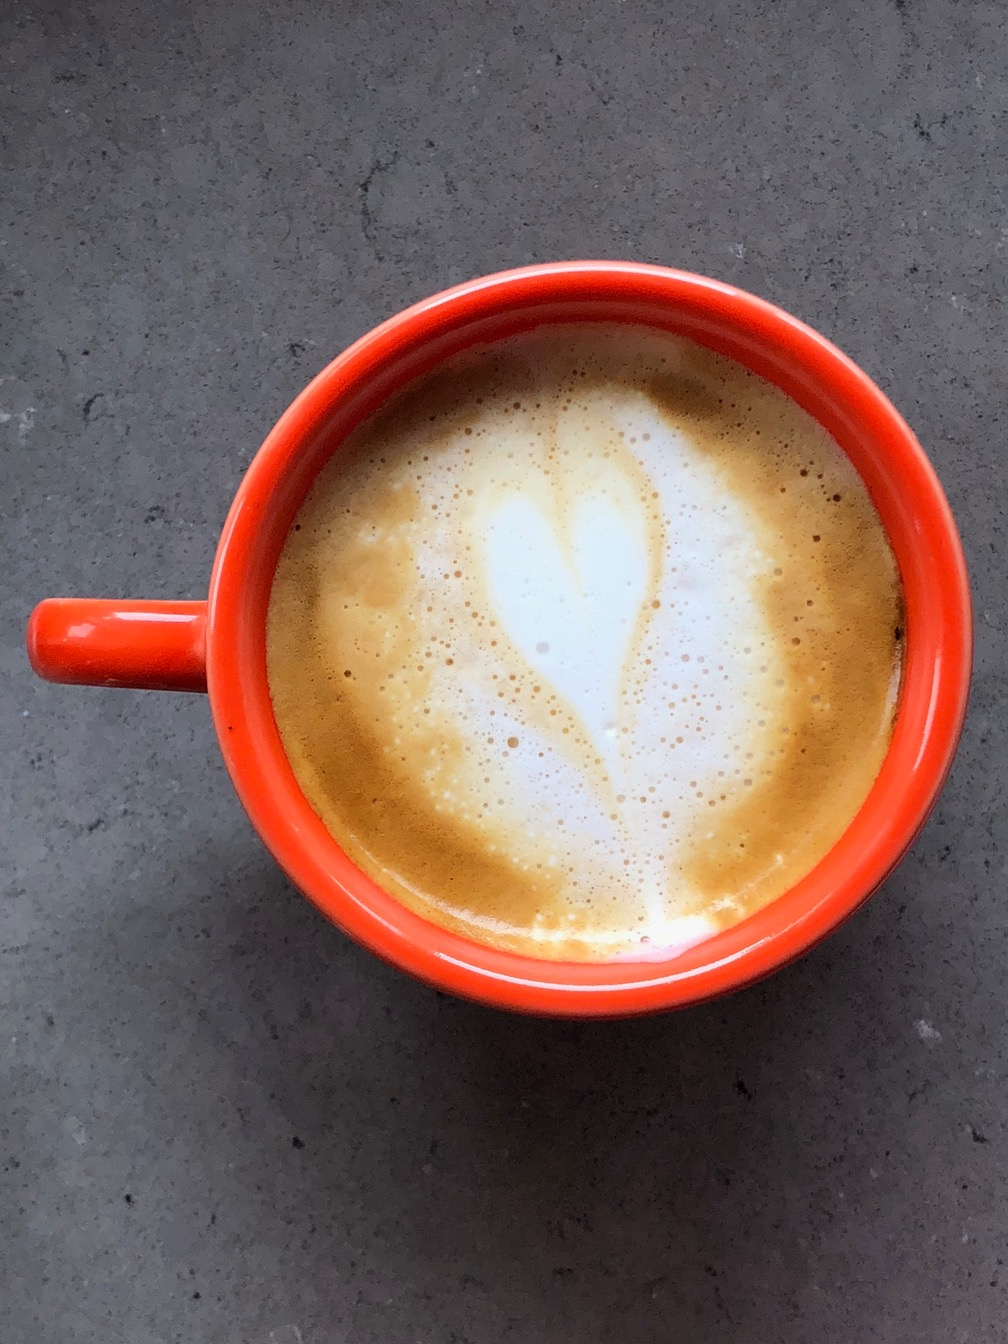 Top down photo of a cappuccino in an orange cup, with a light heart poured in the center.